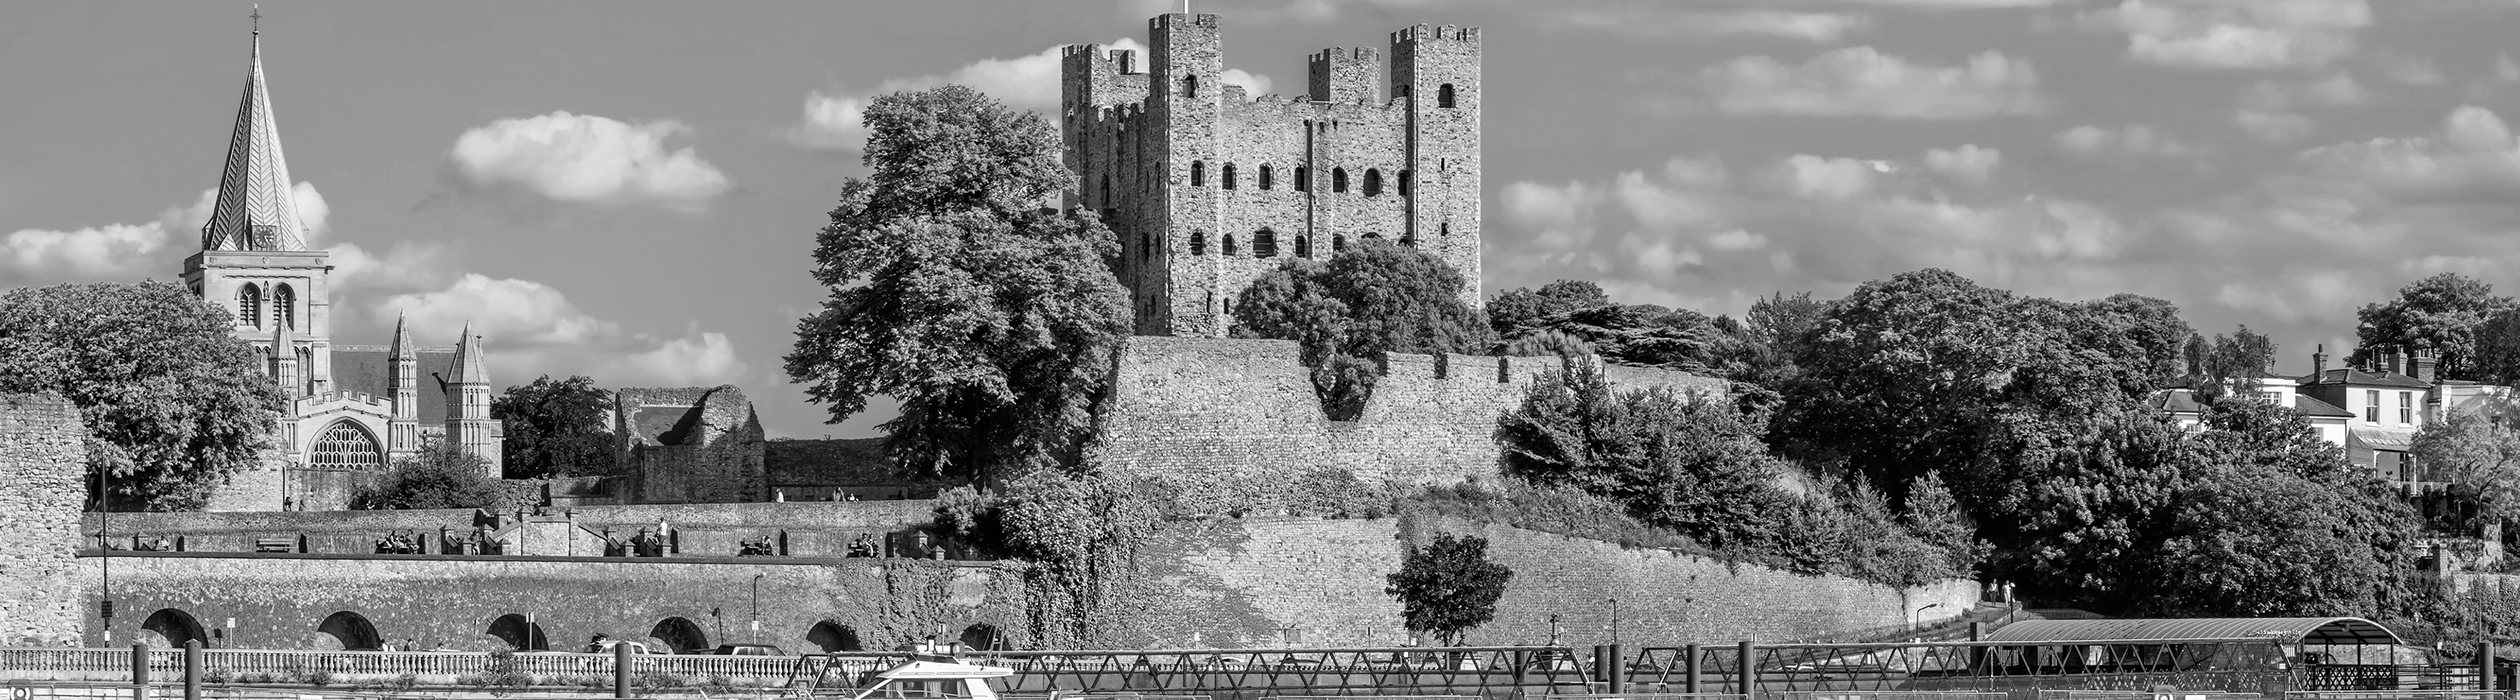 A castle and town walls in Medway